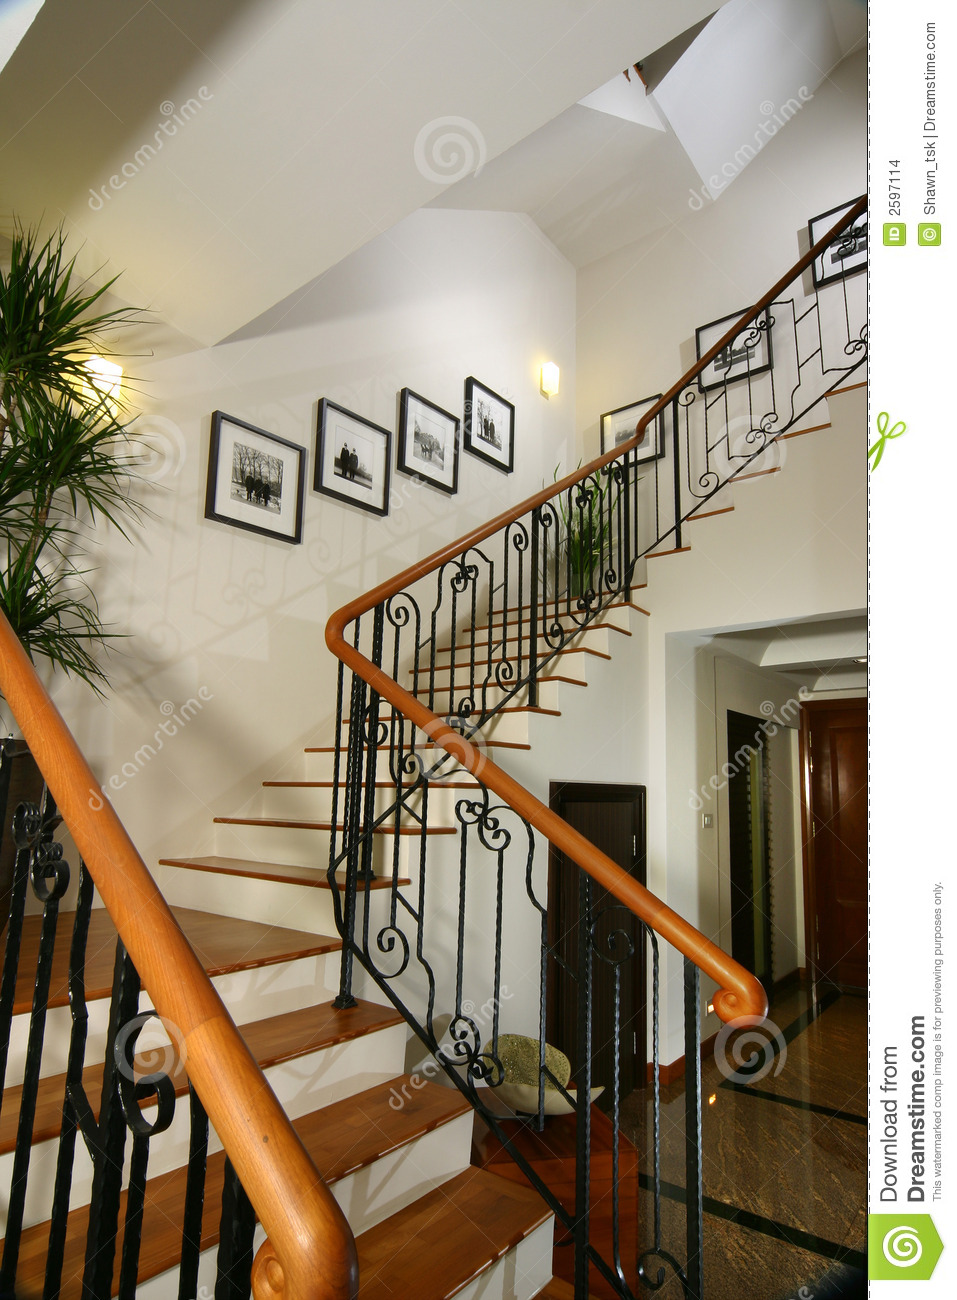 Interior Staircase Ideas Interior Design Stairs Stock Photo Image Of Light Trees 2597114